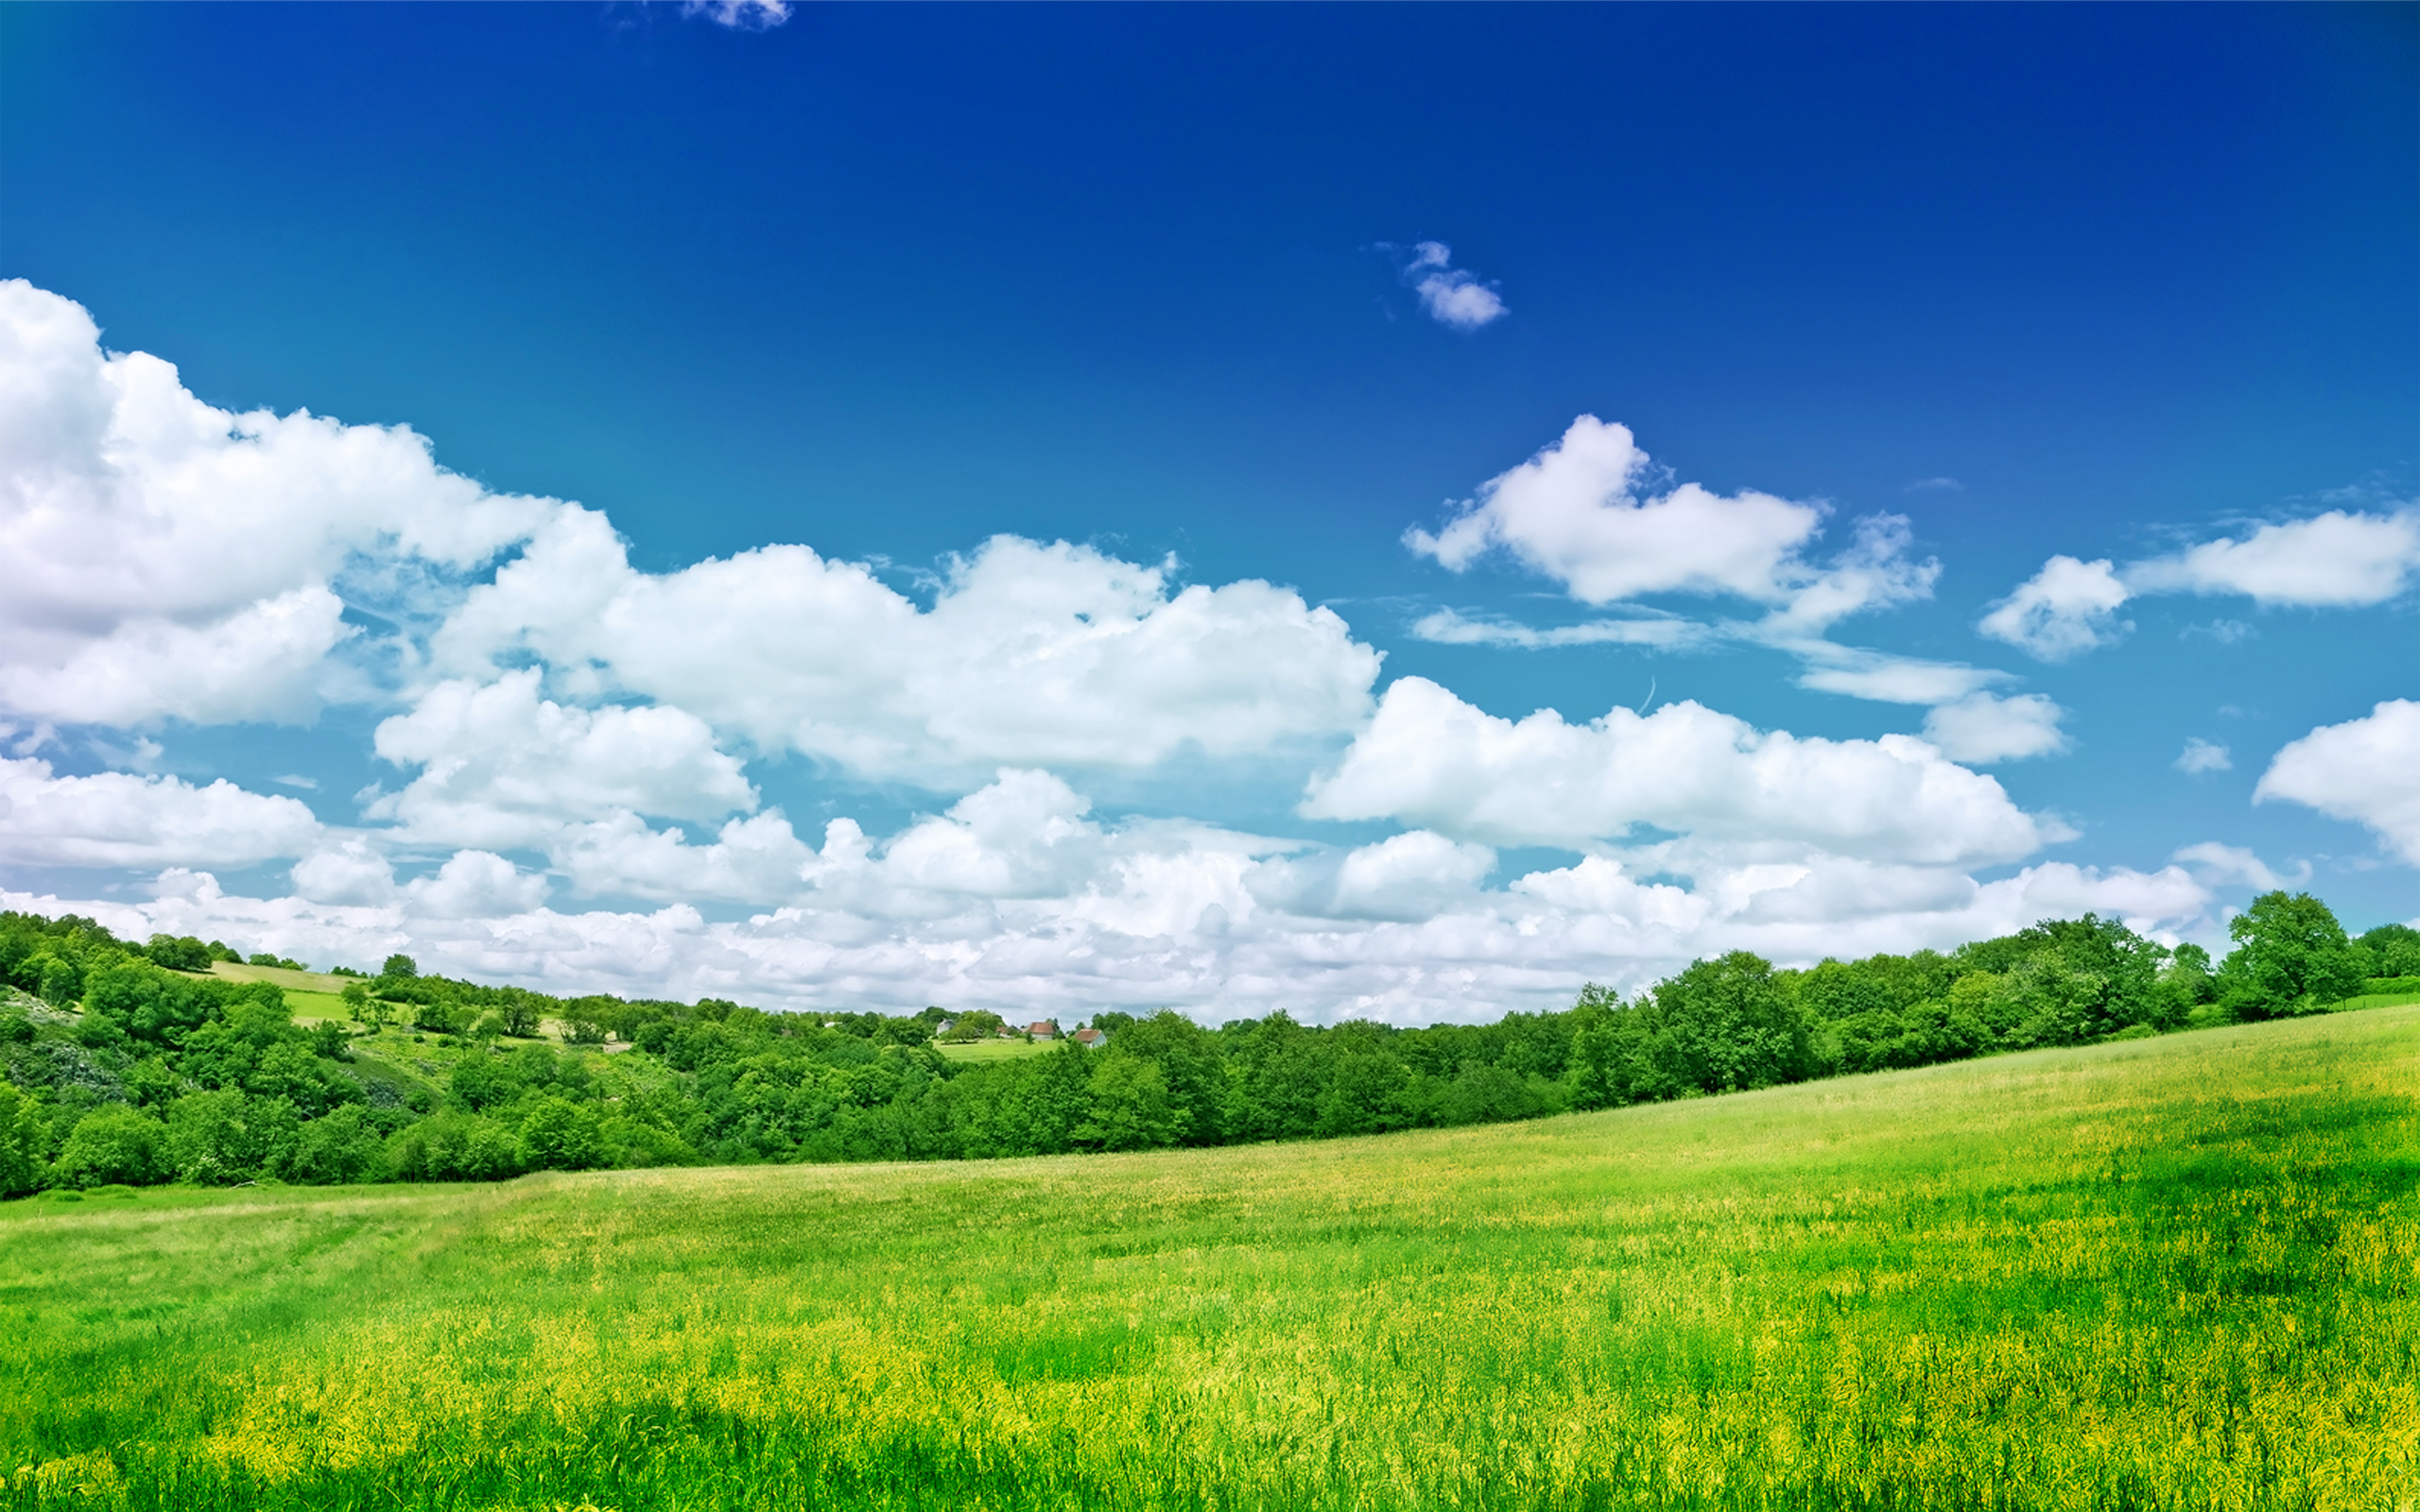 Beautiful Nature Images Hd Background Wallpaper 21   freehighresolutionimages.org